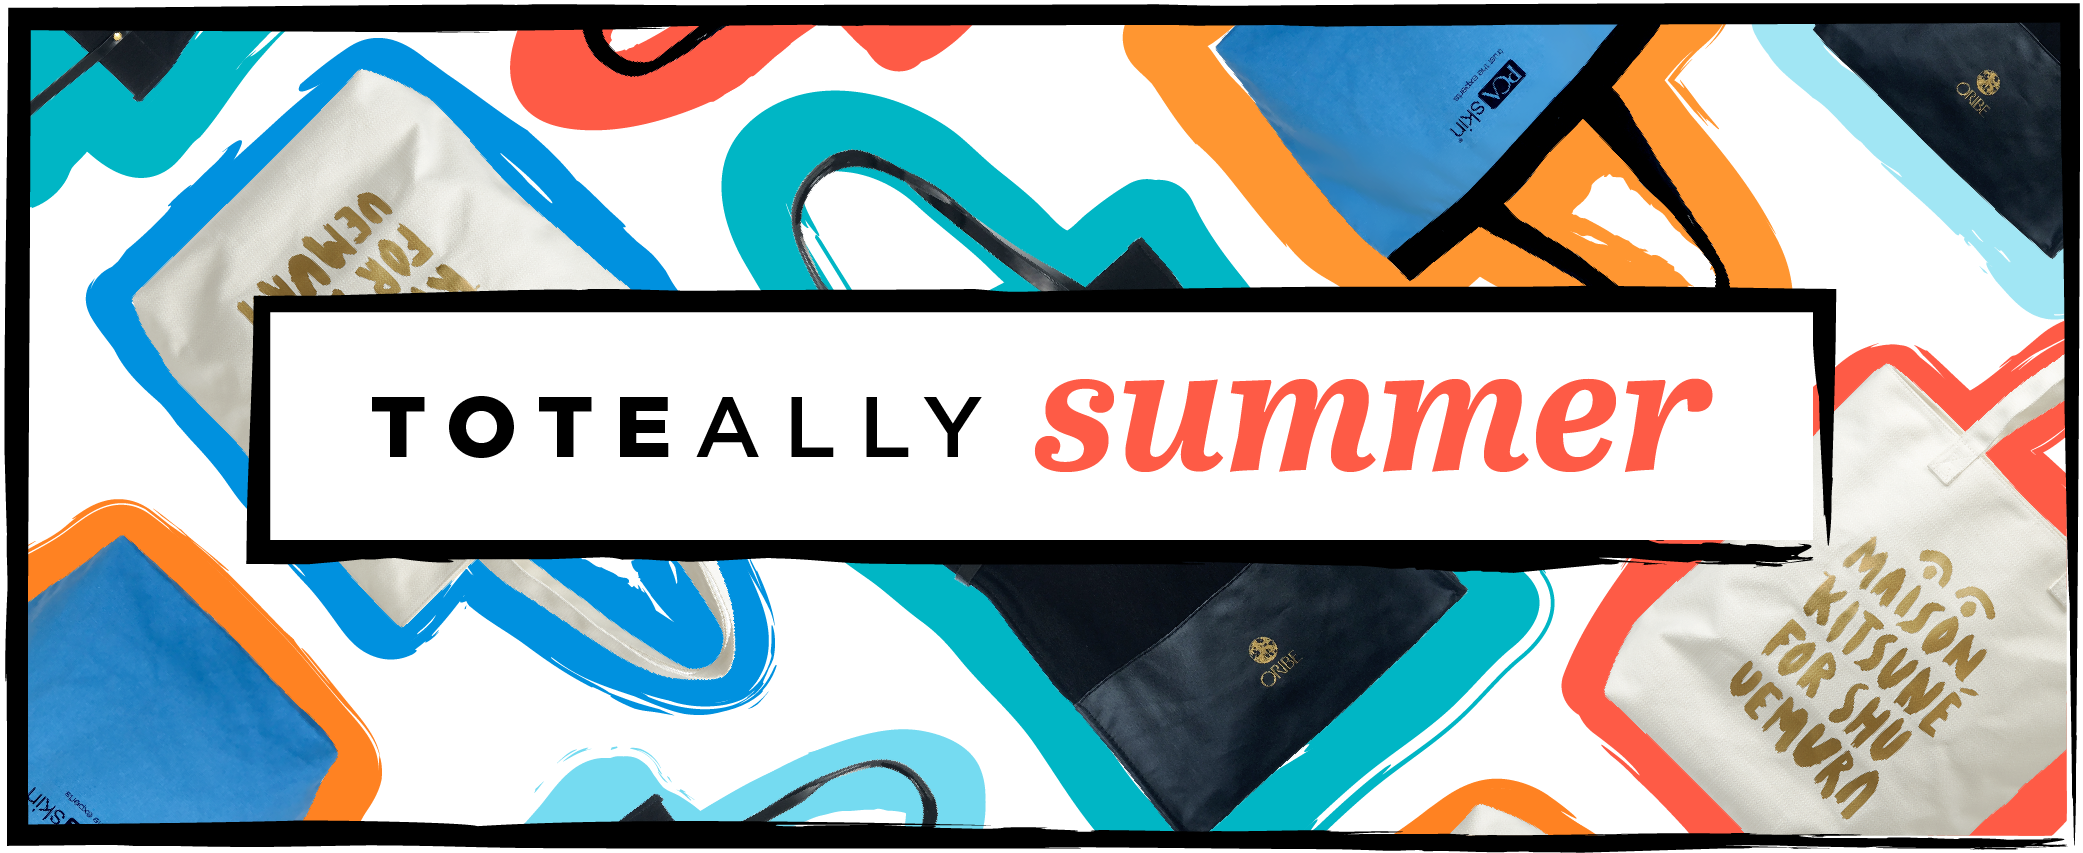 toteally summer beach tote promotion